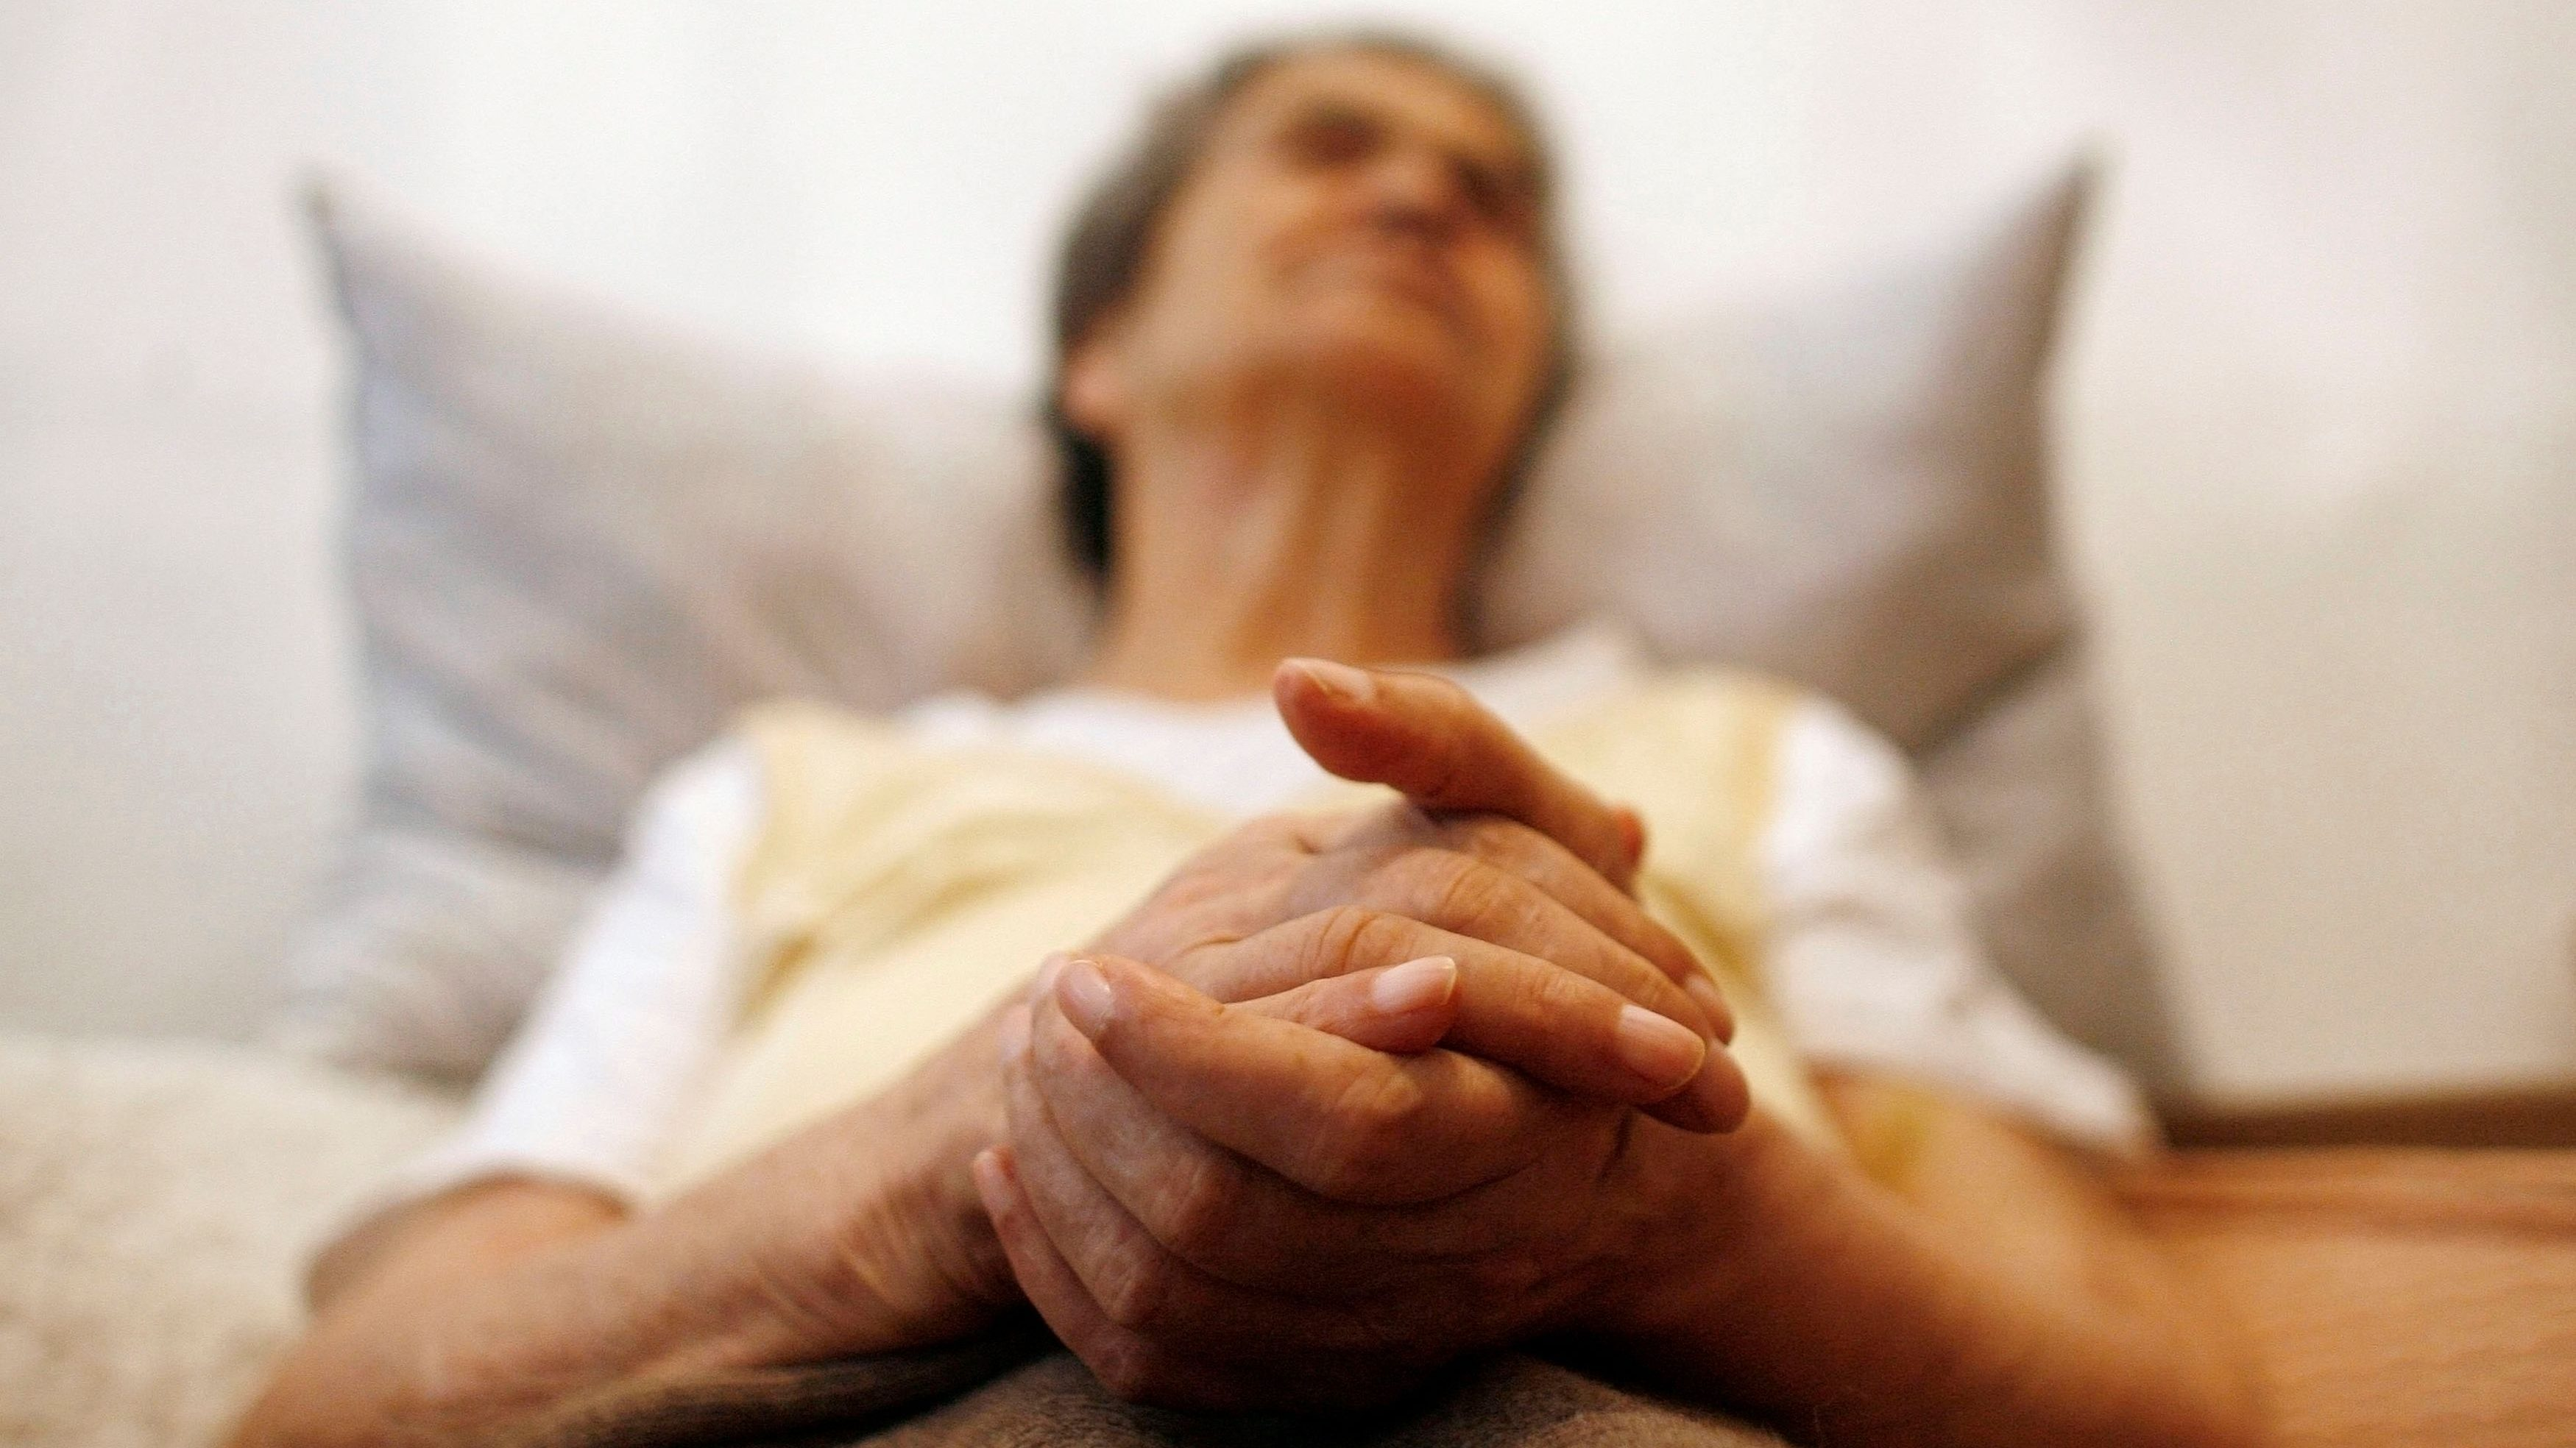 Dementia rates are set to double by 2060, and minorities will get hit hardest